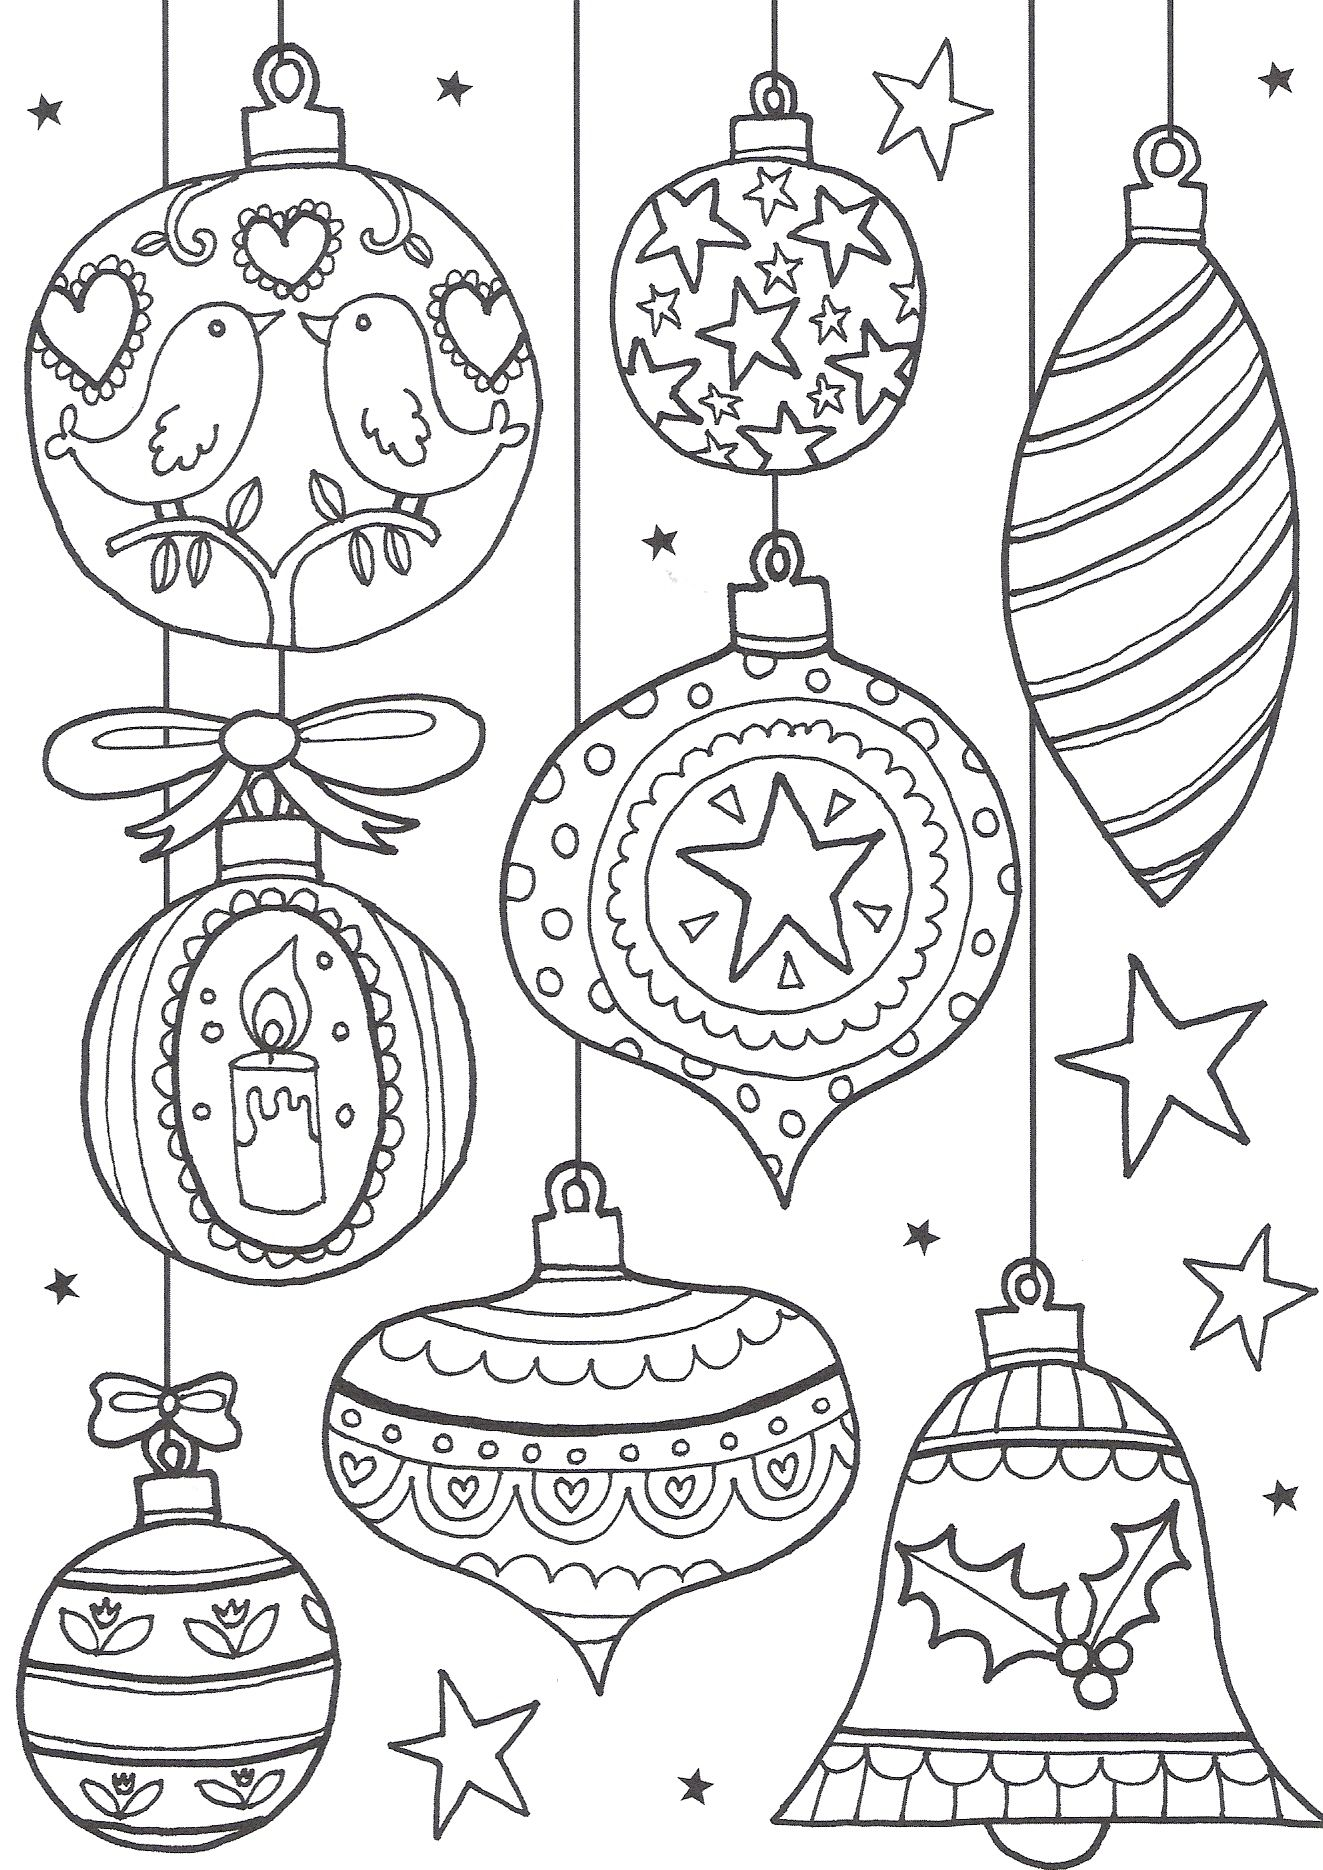 Christmas Coloring Pages For Free Printable With Colouring Adults The Ultimate Roundup